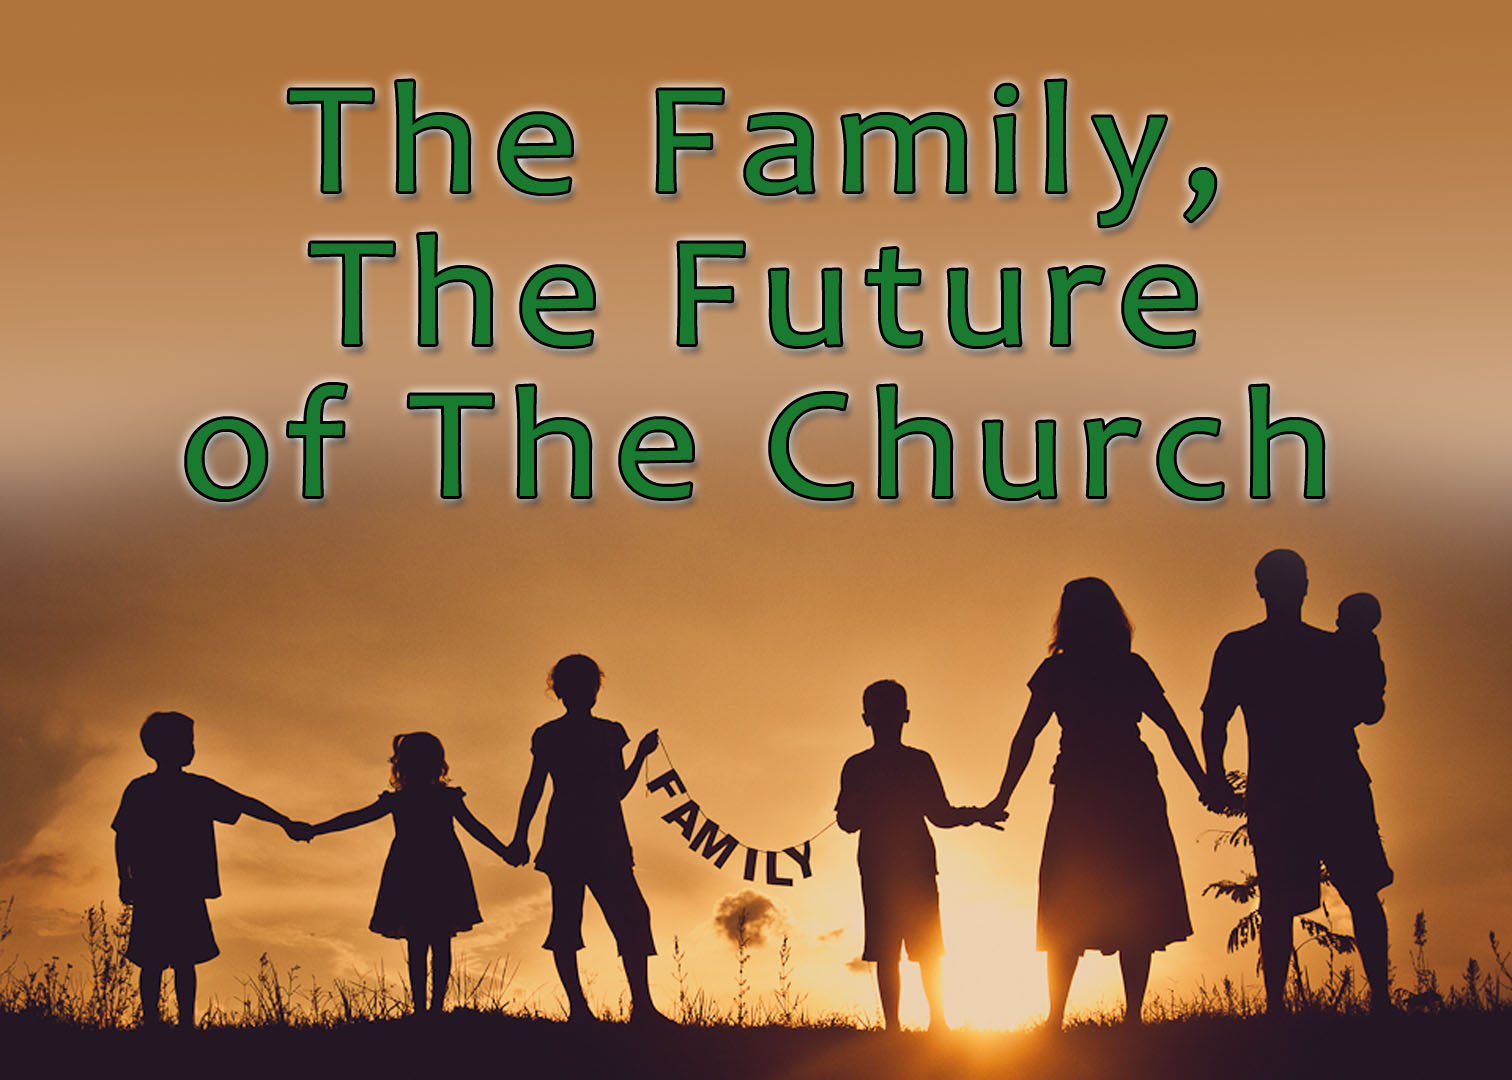 THE FAMILY, THE FUTURE OF THE CHURCH (12-30-18)